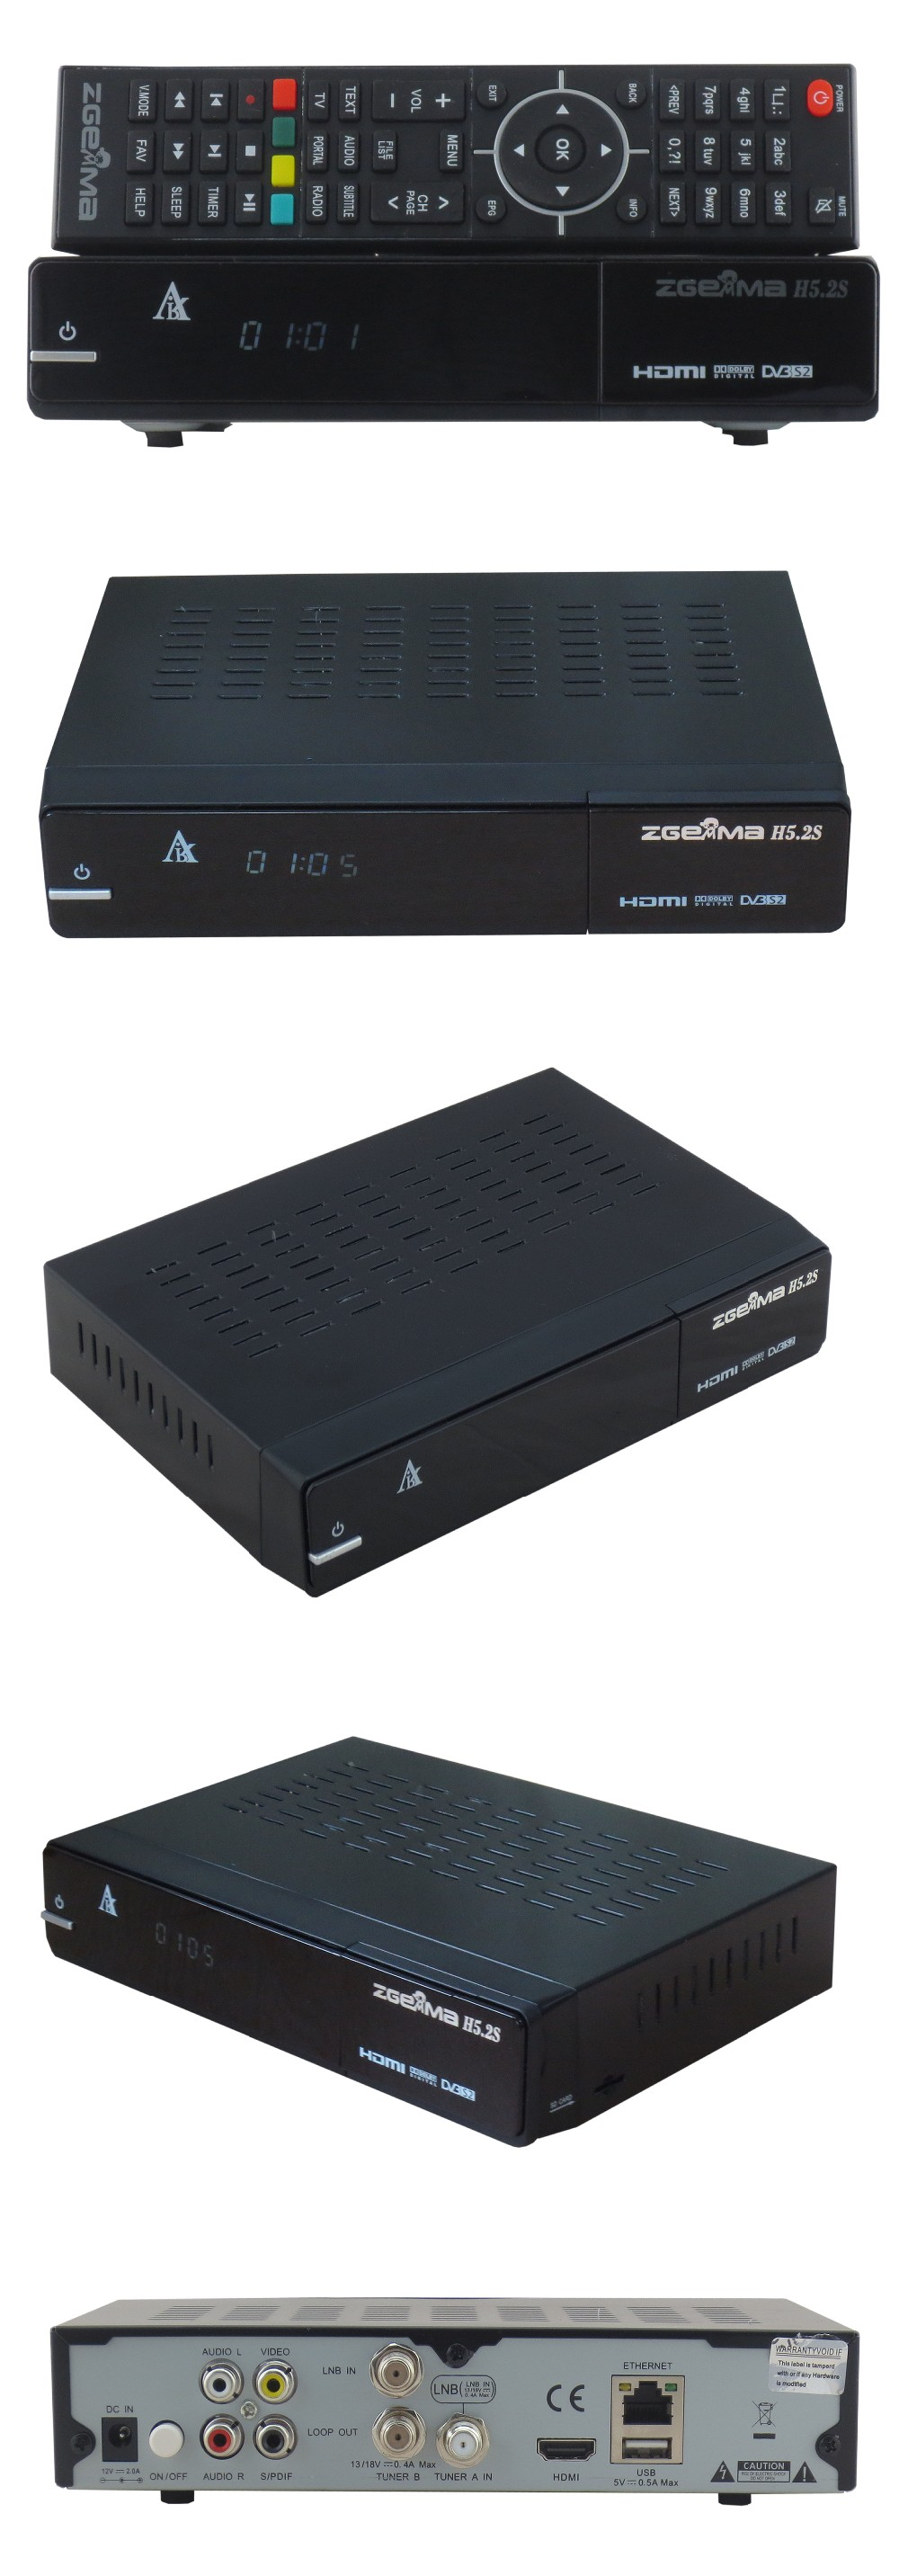 Worldwide Available ZGEMMA H5.2S Satellite Receiver Dual Core DVB-S2+S2 Twin Tuners At Factory Price